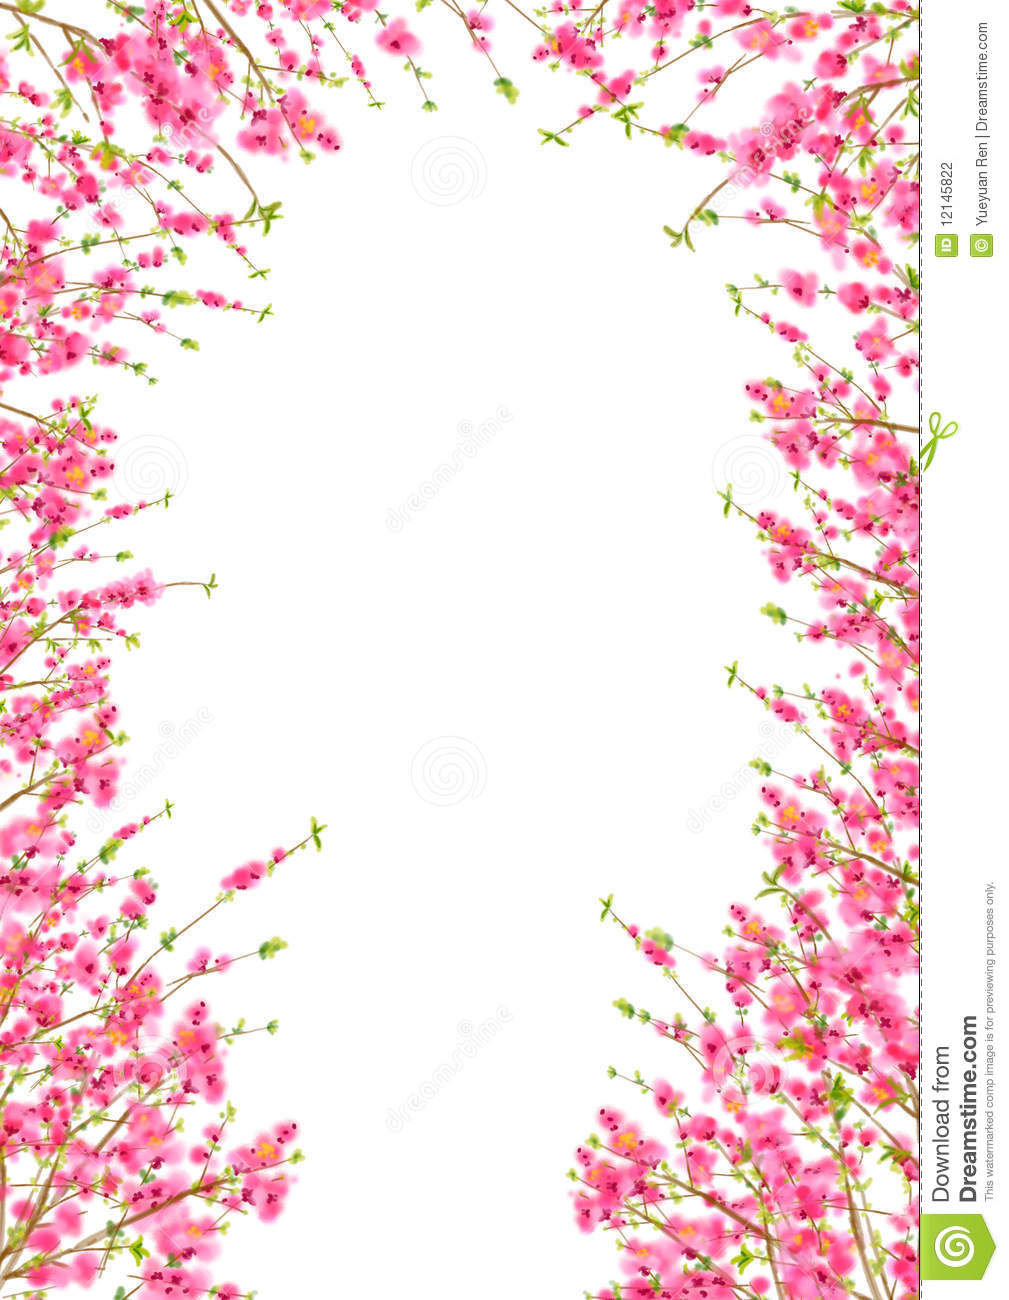 Peach Or Cherry Blossom Background In Spring Time Stock ...